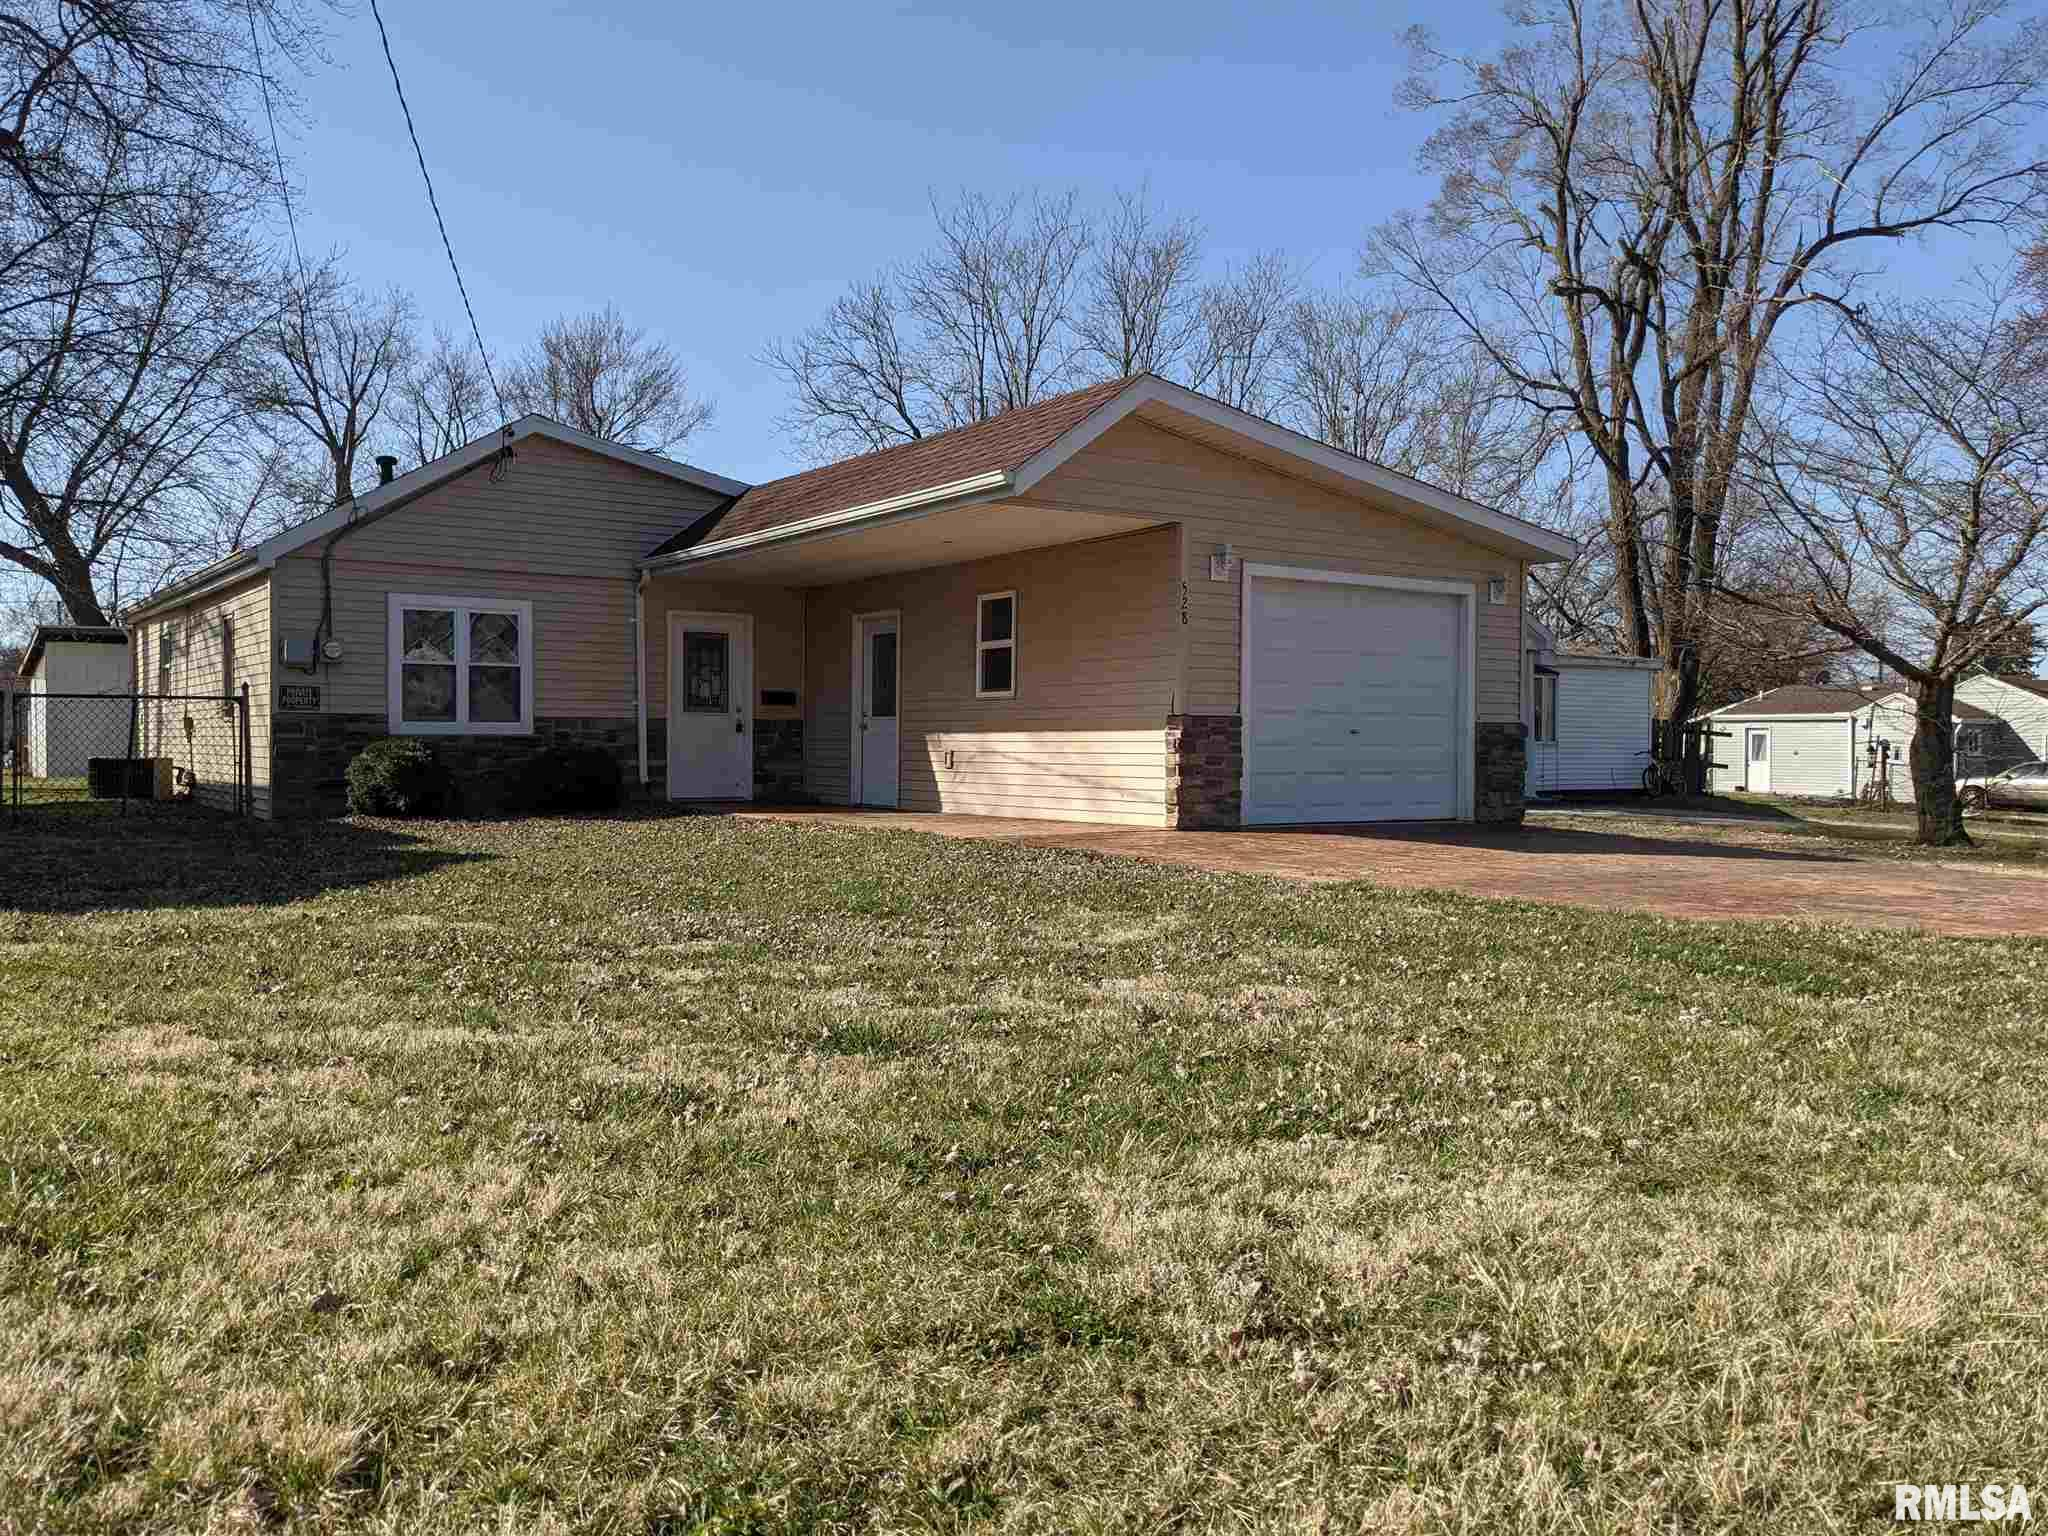 528 DEMPSEY Property Photo - Creve Coeur, IL real estate listing